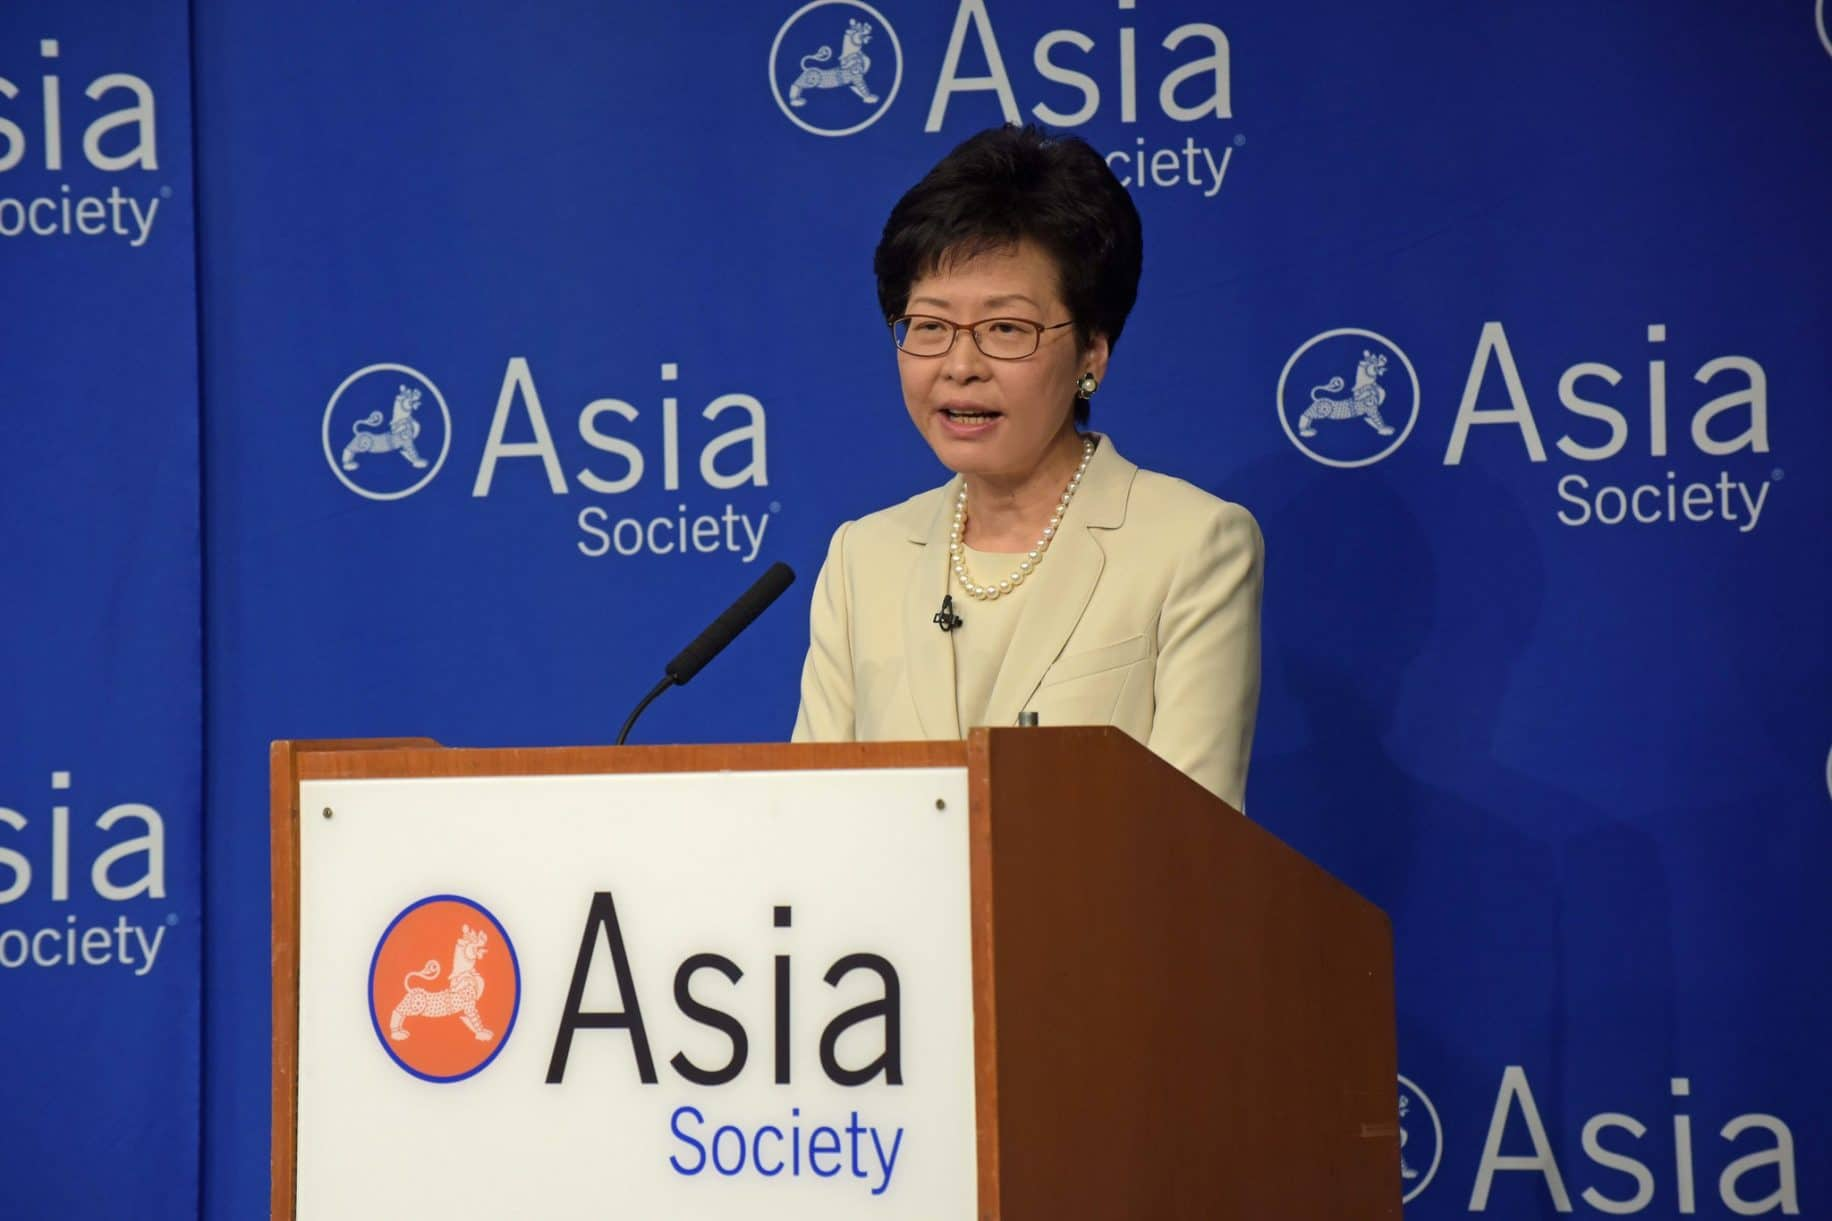 Carrie Lam targets Hong Kong's youth with changes to education, job scheme